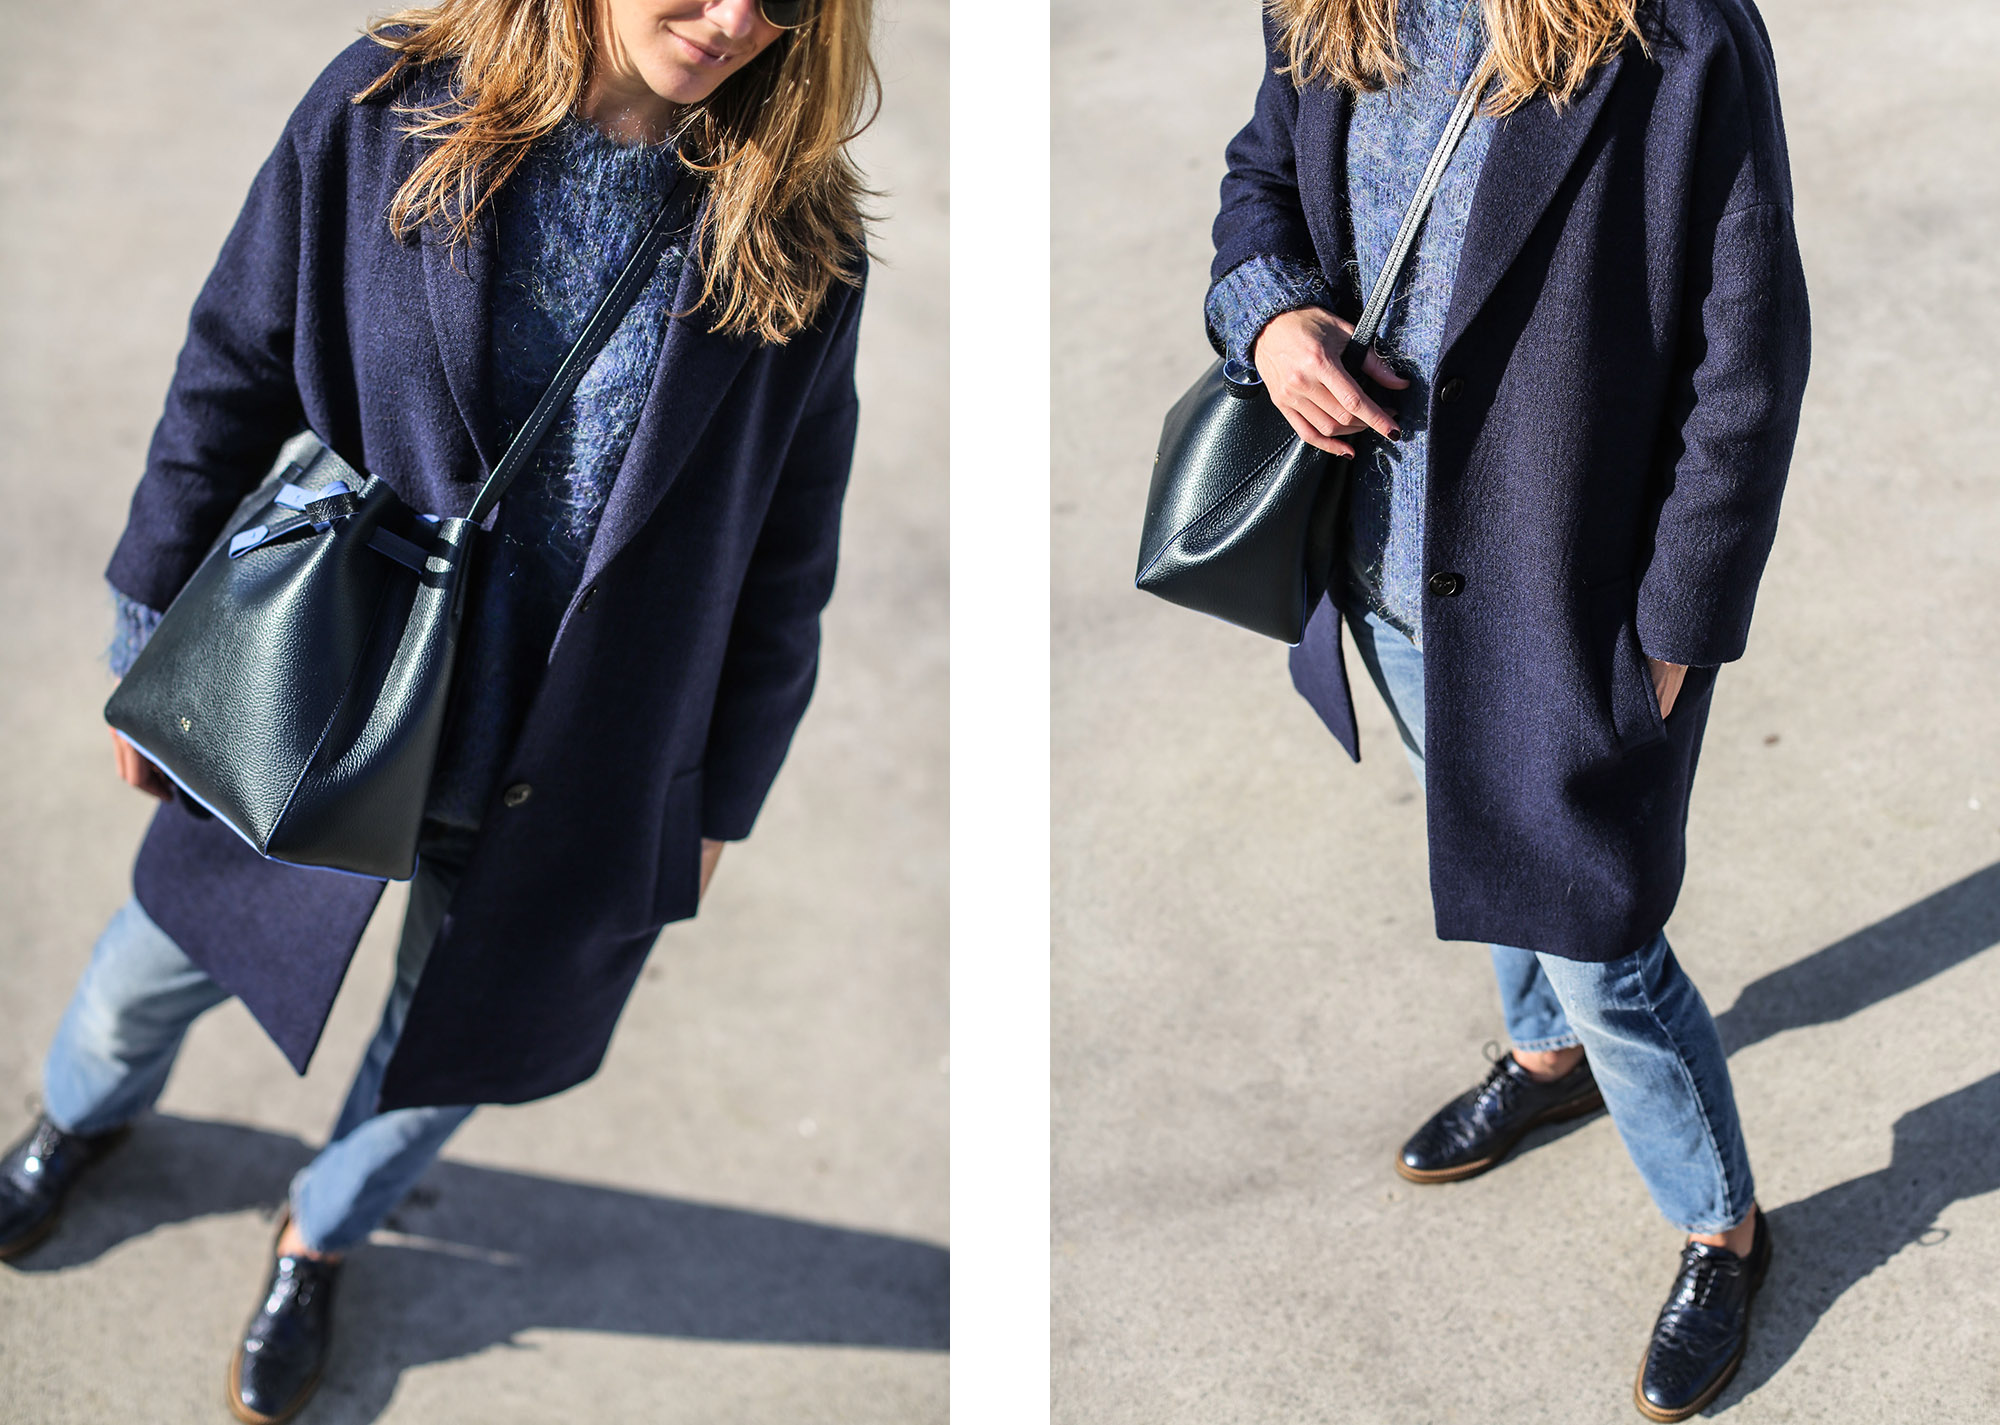 Clochet_streetstyle_masscob_navy_coat_trimmer_bilbao_acne_pop_jeans-19